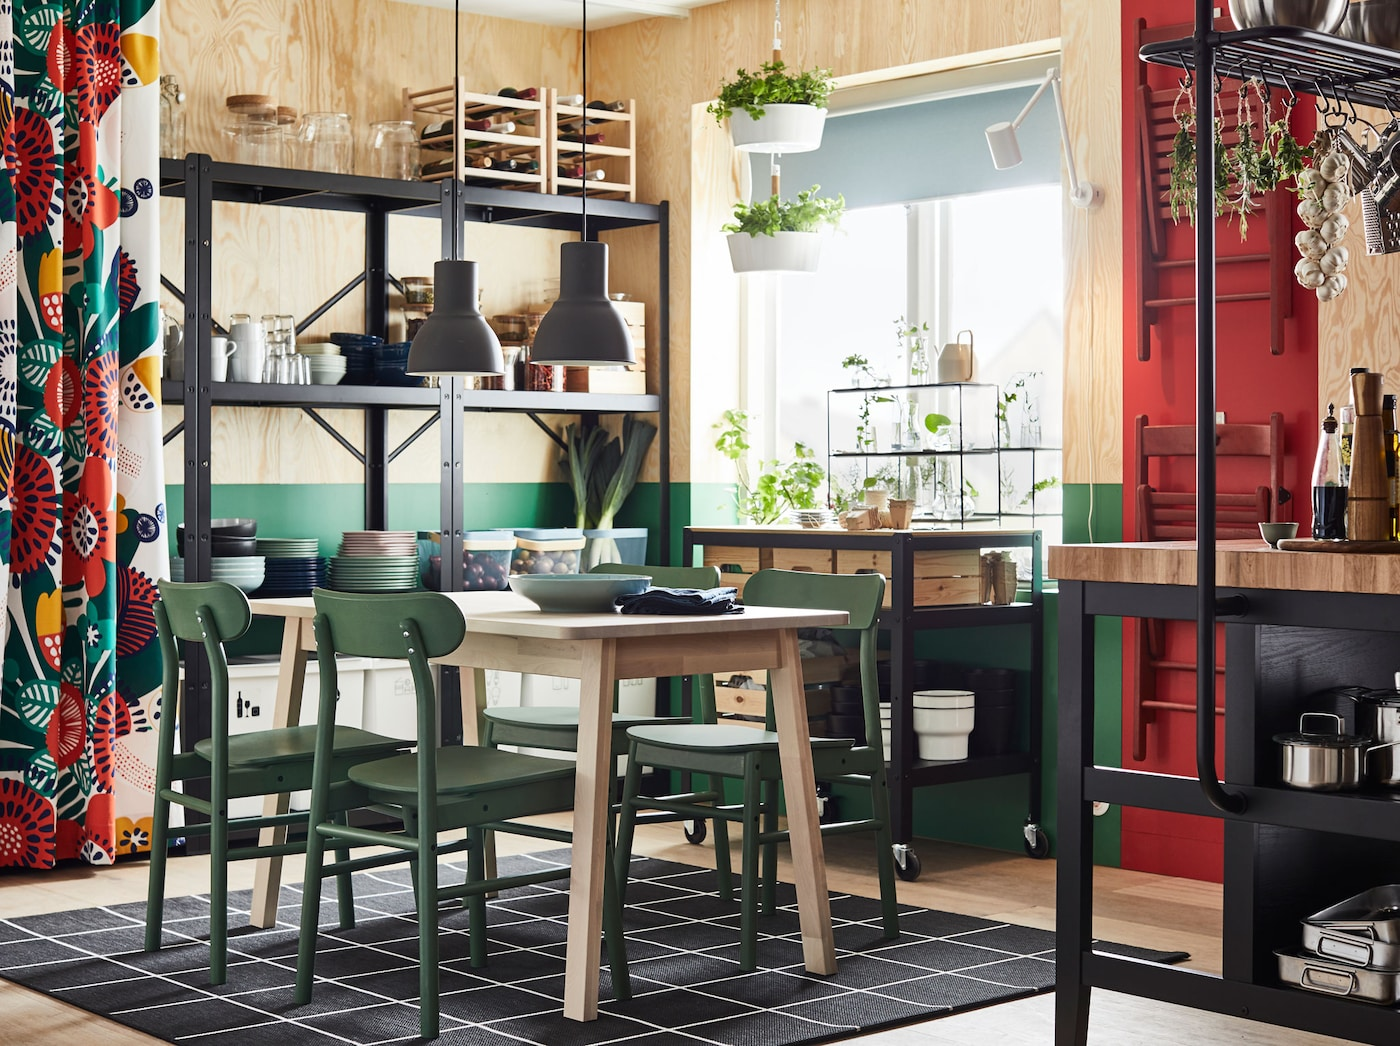 Explore this flower patterned and sustainable dining room, complete with IRMELIN bright flower coloured curtains, TORHAMN kitchen island and solid birch NORRÅKER dining table, to name a few.